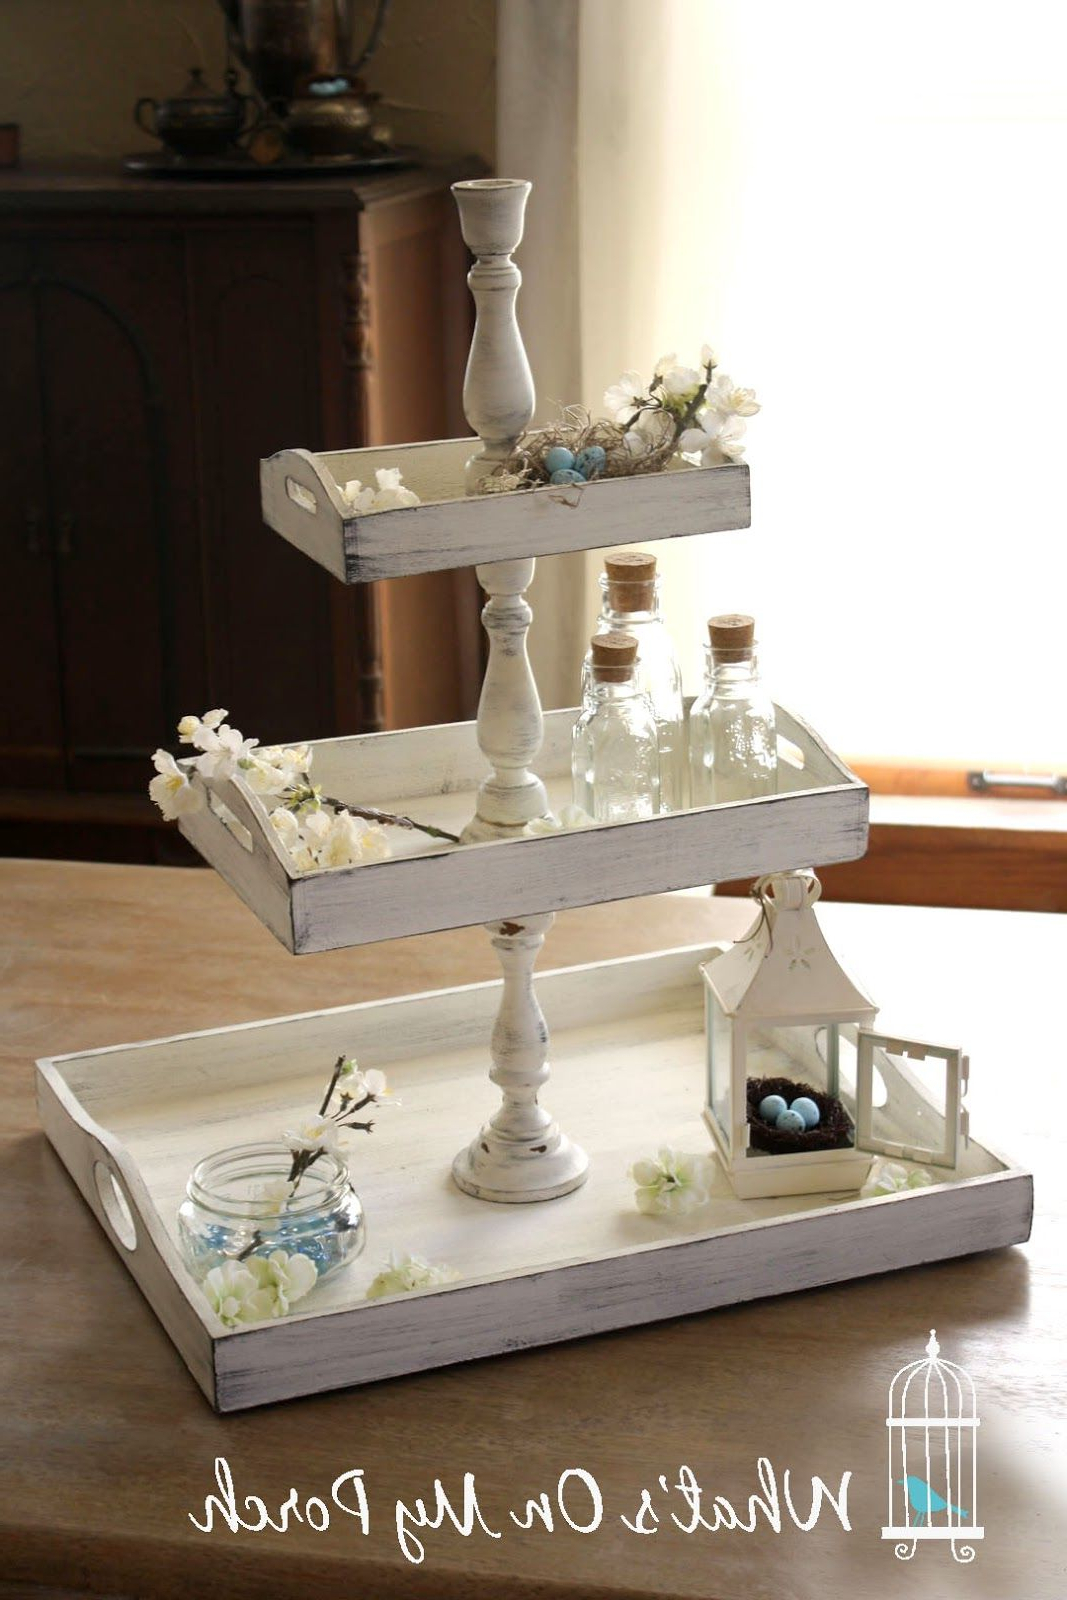 Why Ill Never Make Another 3 Tiered Tray Probably